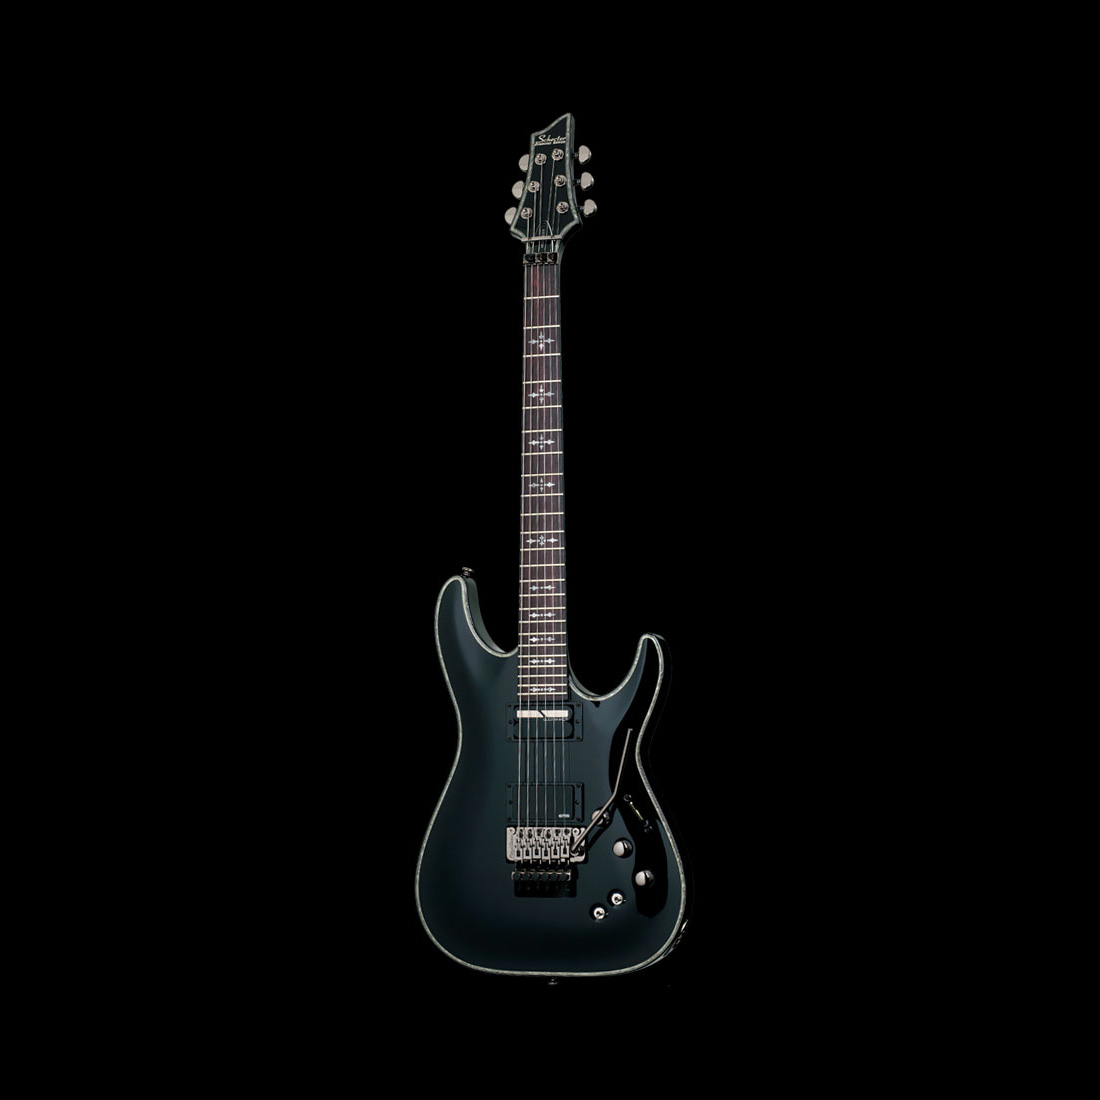 Schecter / HELLRAISER SUSTAINIAC C-1FR Gross Black シェクター エレキギター 【お取り寄せ商品/納期別途ご案内】